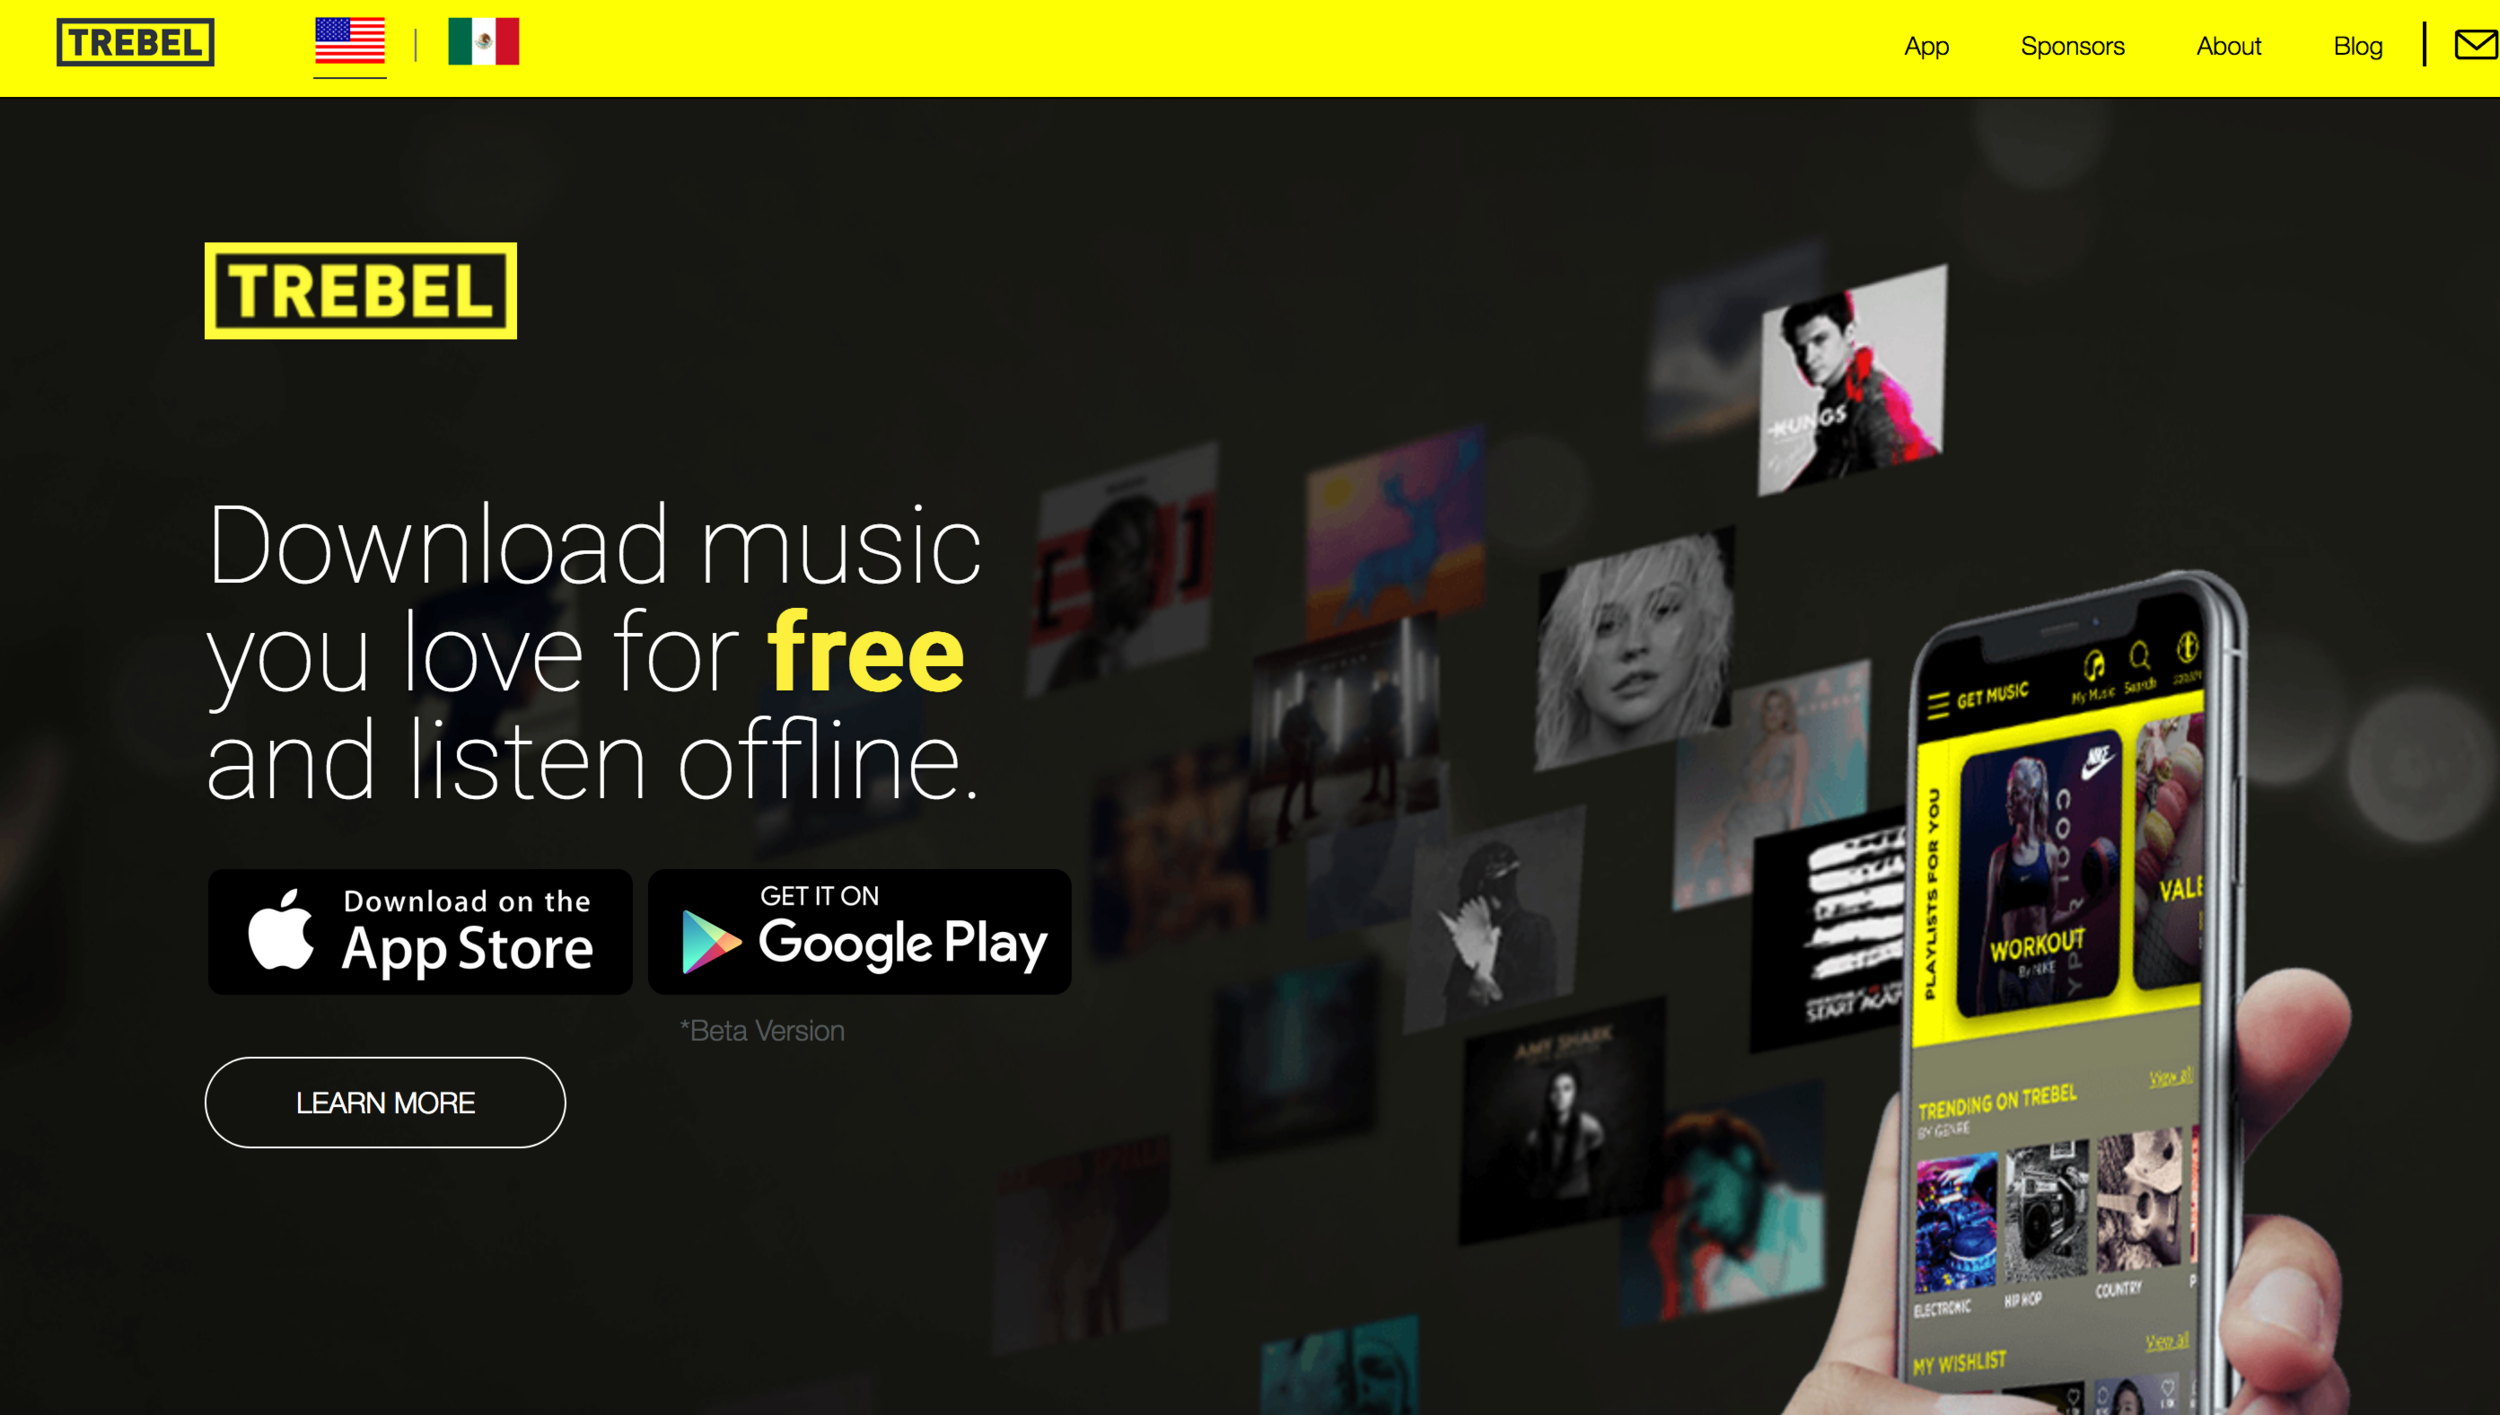 TREBEL Music: A novel and effective approach to free music